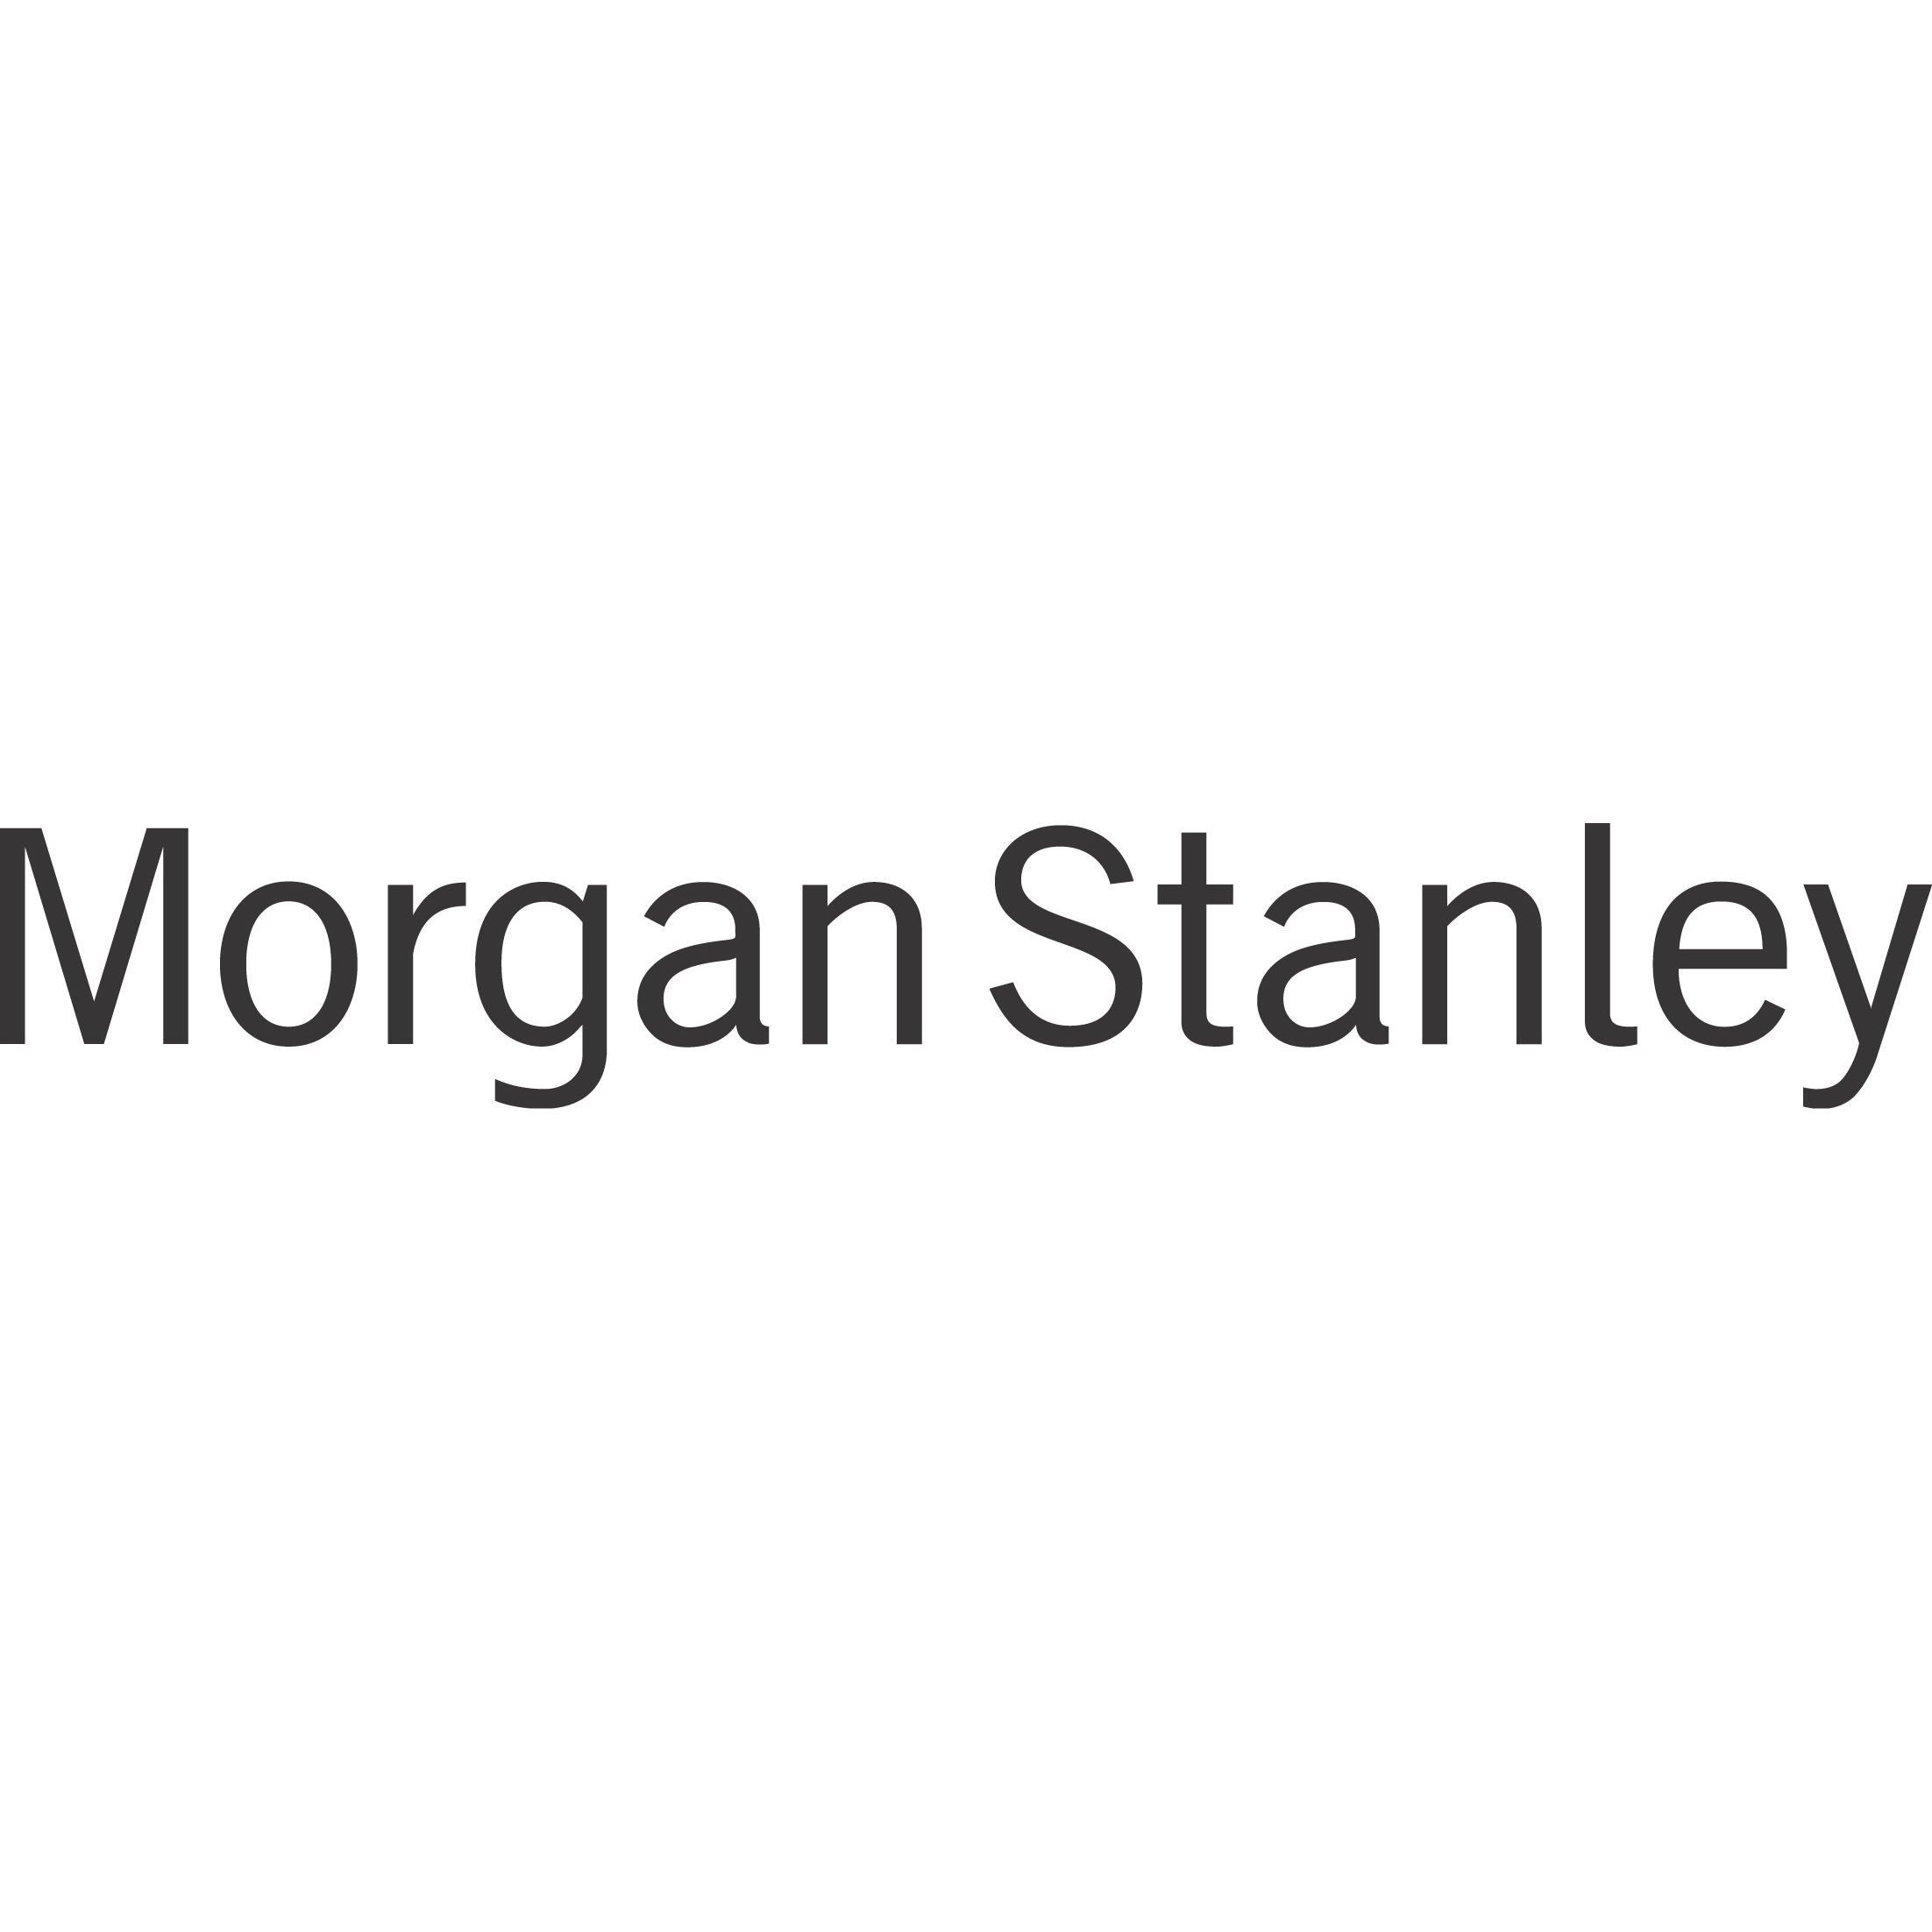 Morgan Stanley Financial Advisors